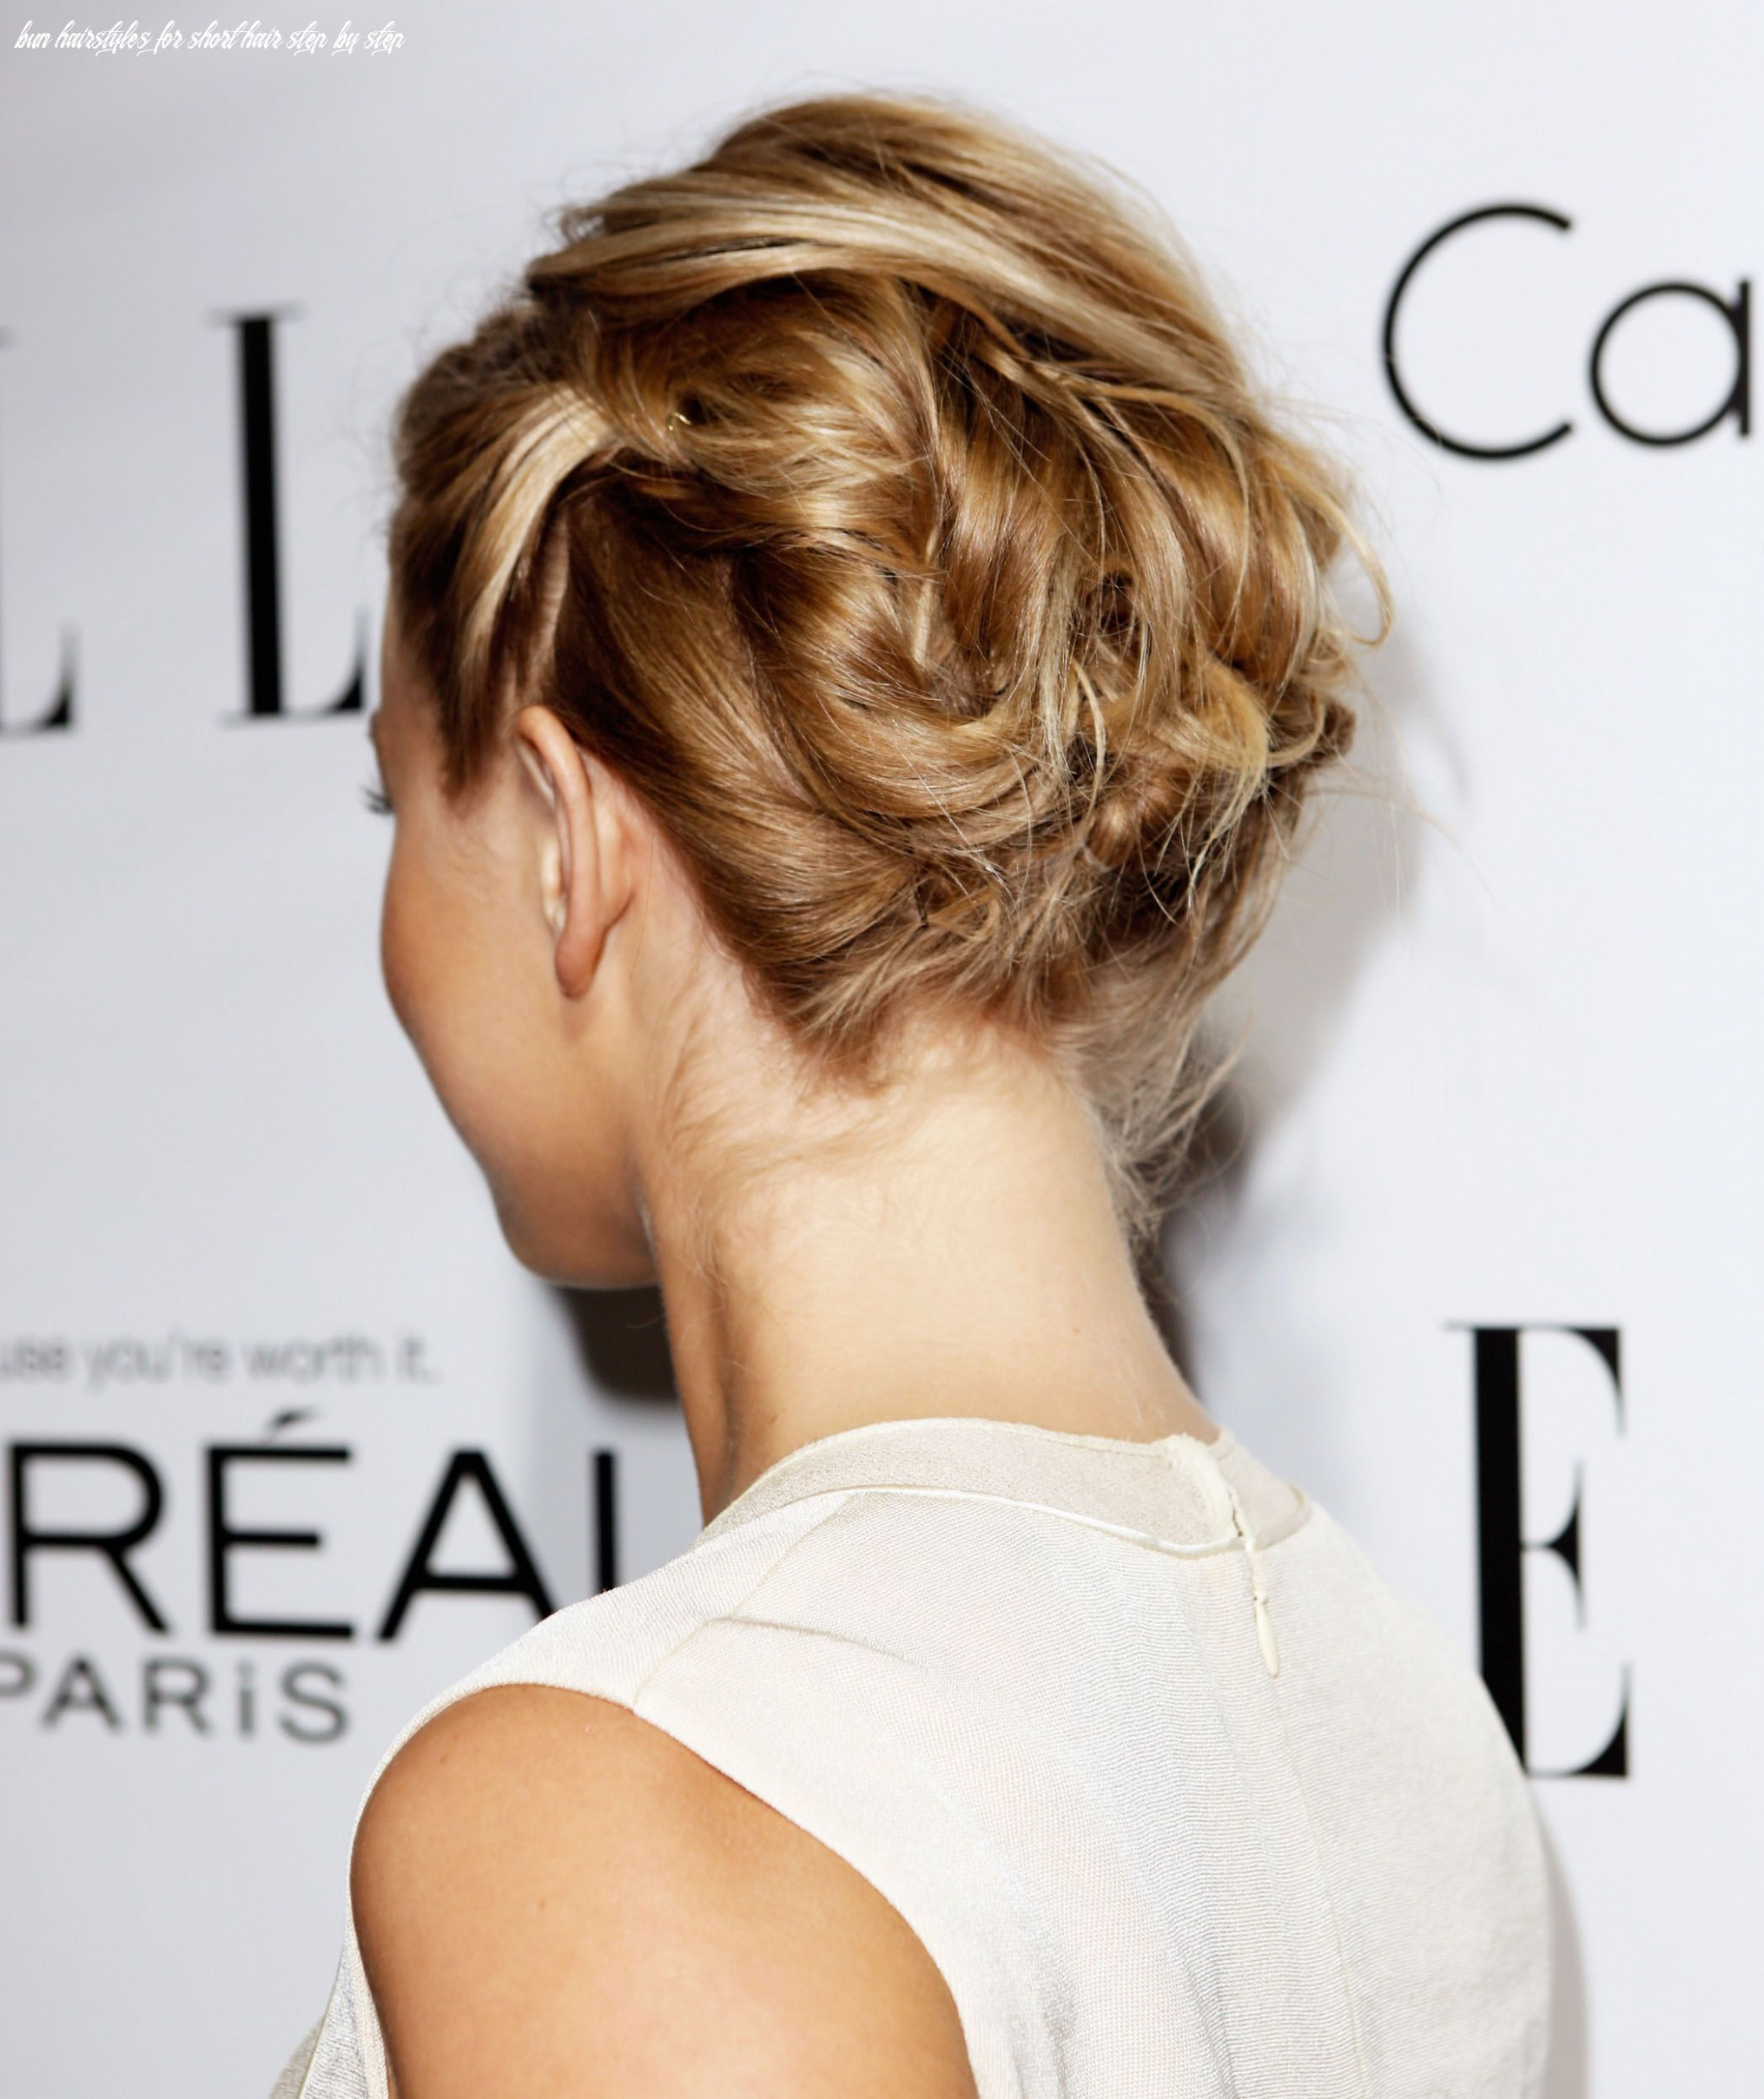 12 Incredibly Chic Updo Ideas for Short Hair